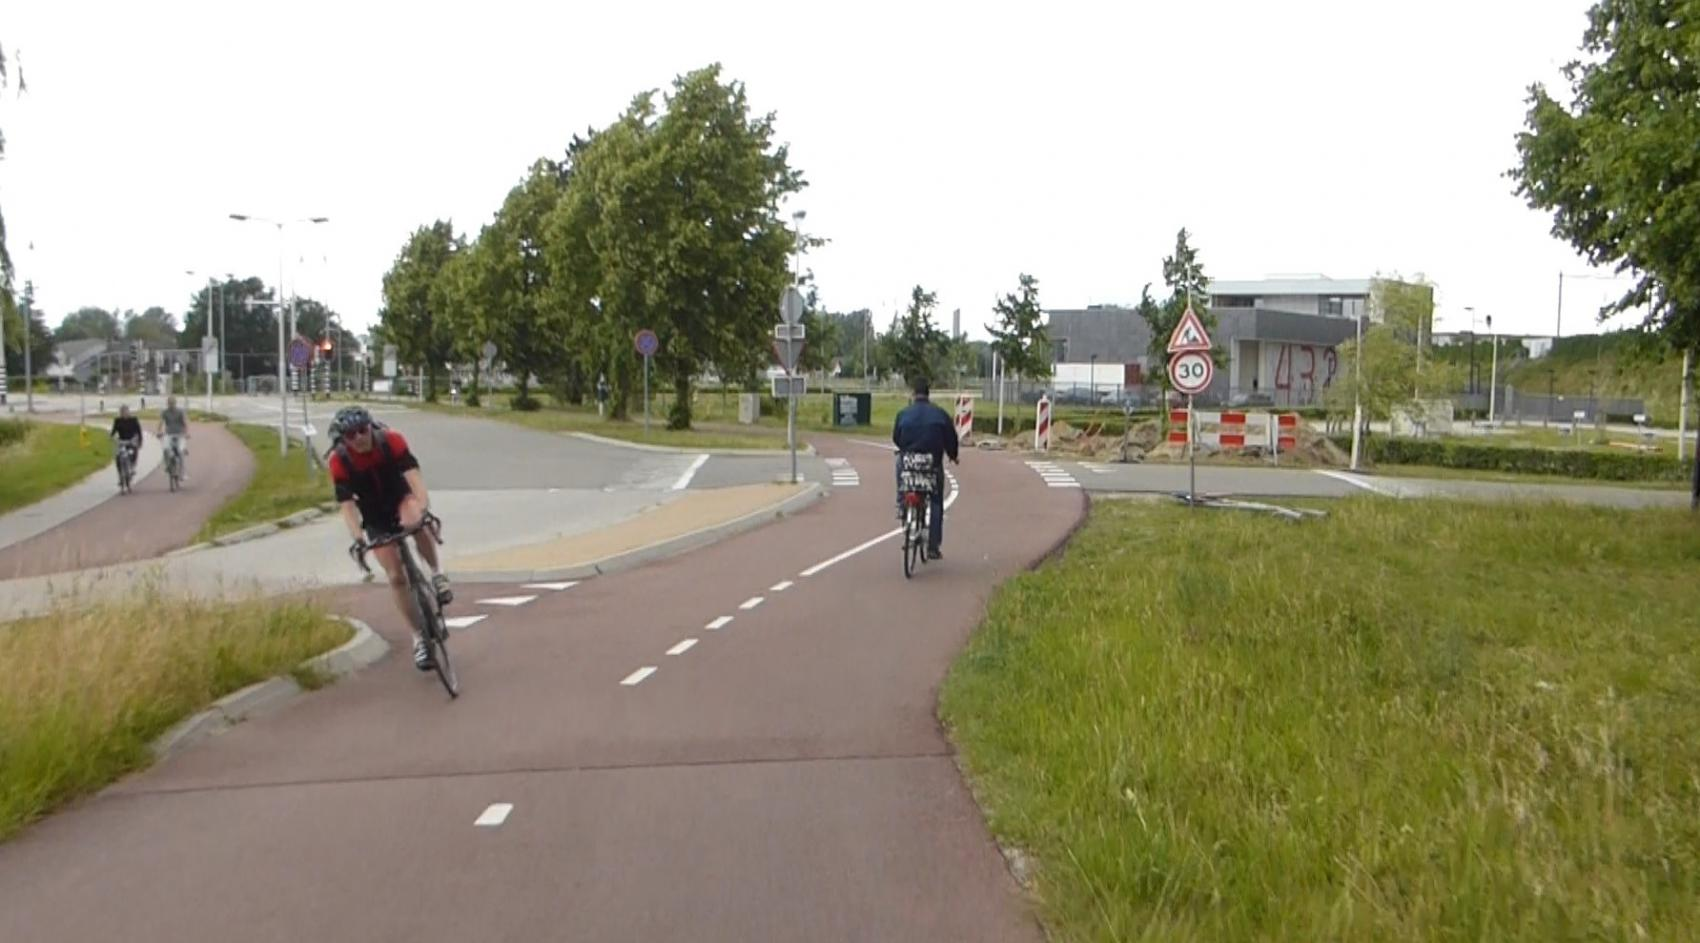 The crossings at the bottom of the ramps give priority to the cyclists coming from the bridge, so they do not have to brake and waste energy.